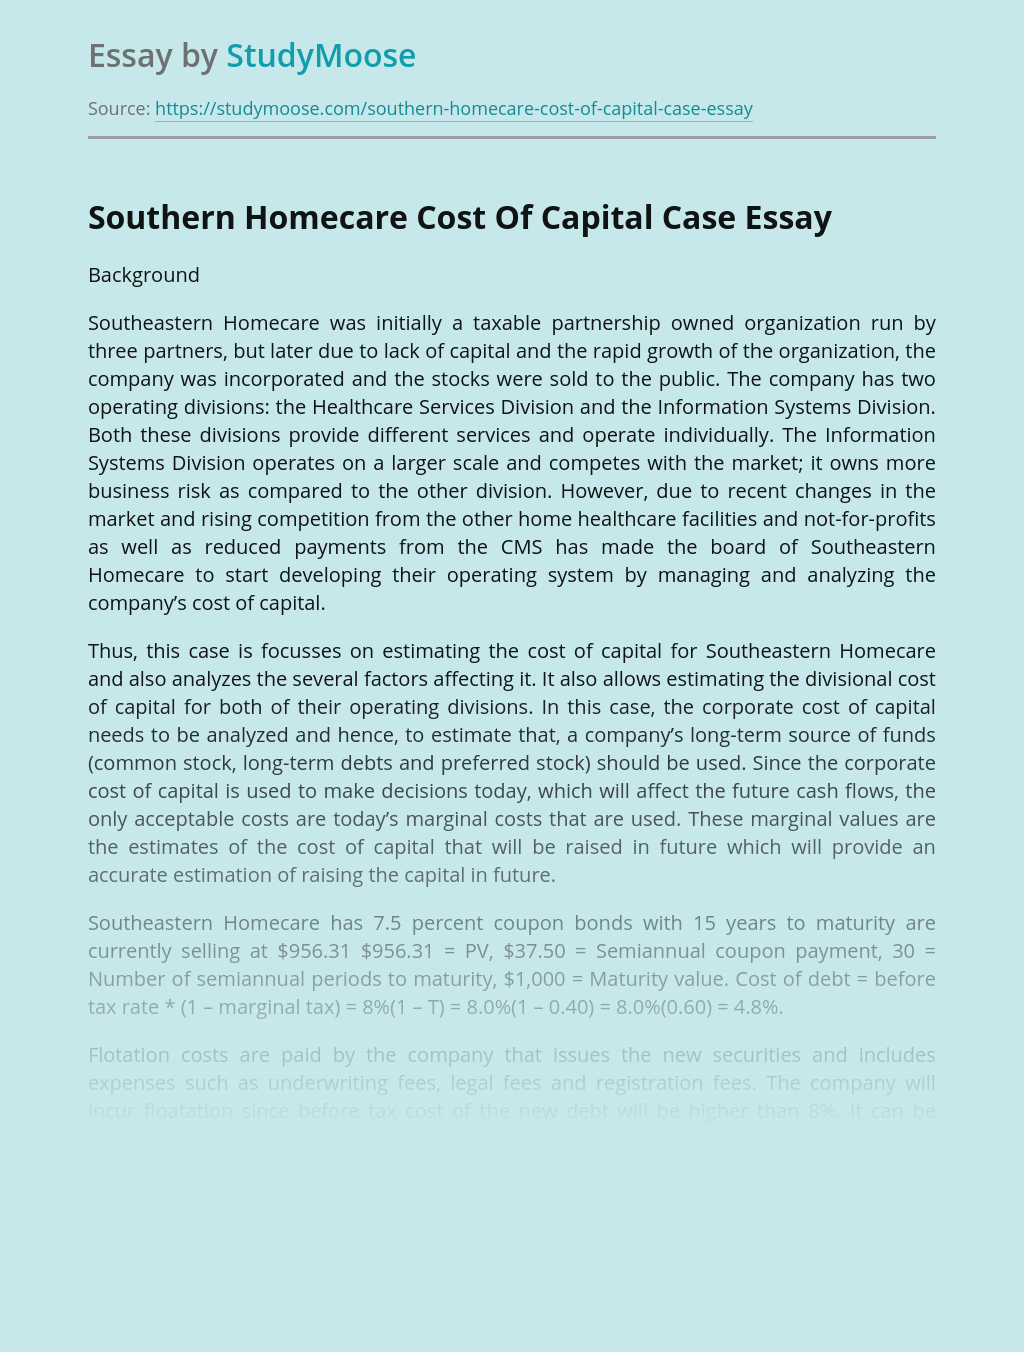 Southern Homecare Cost Of Capital Case